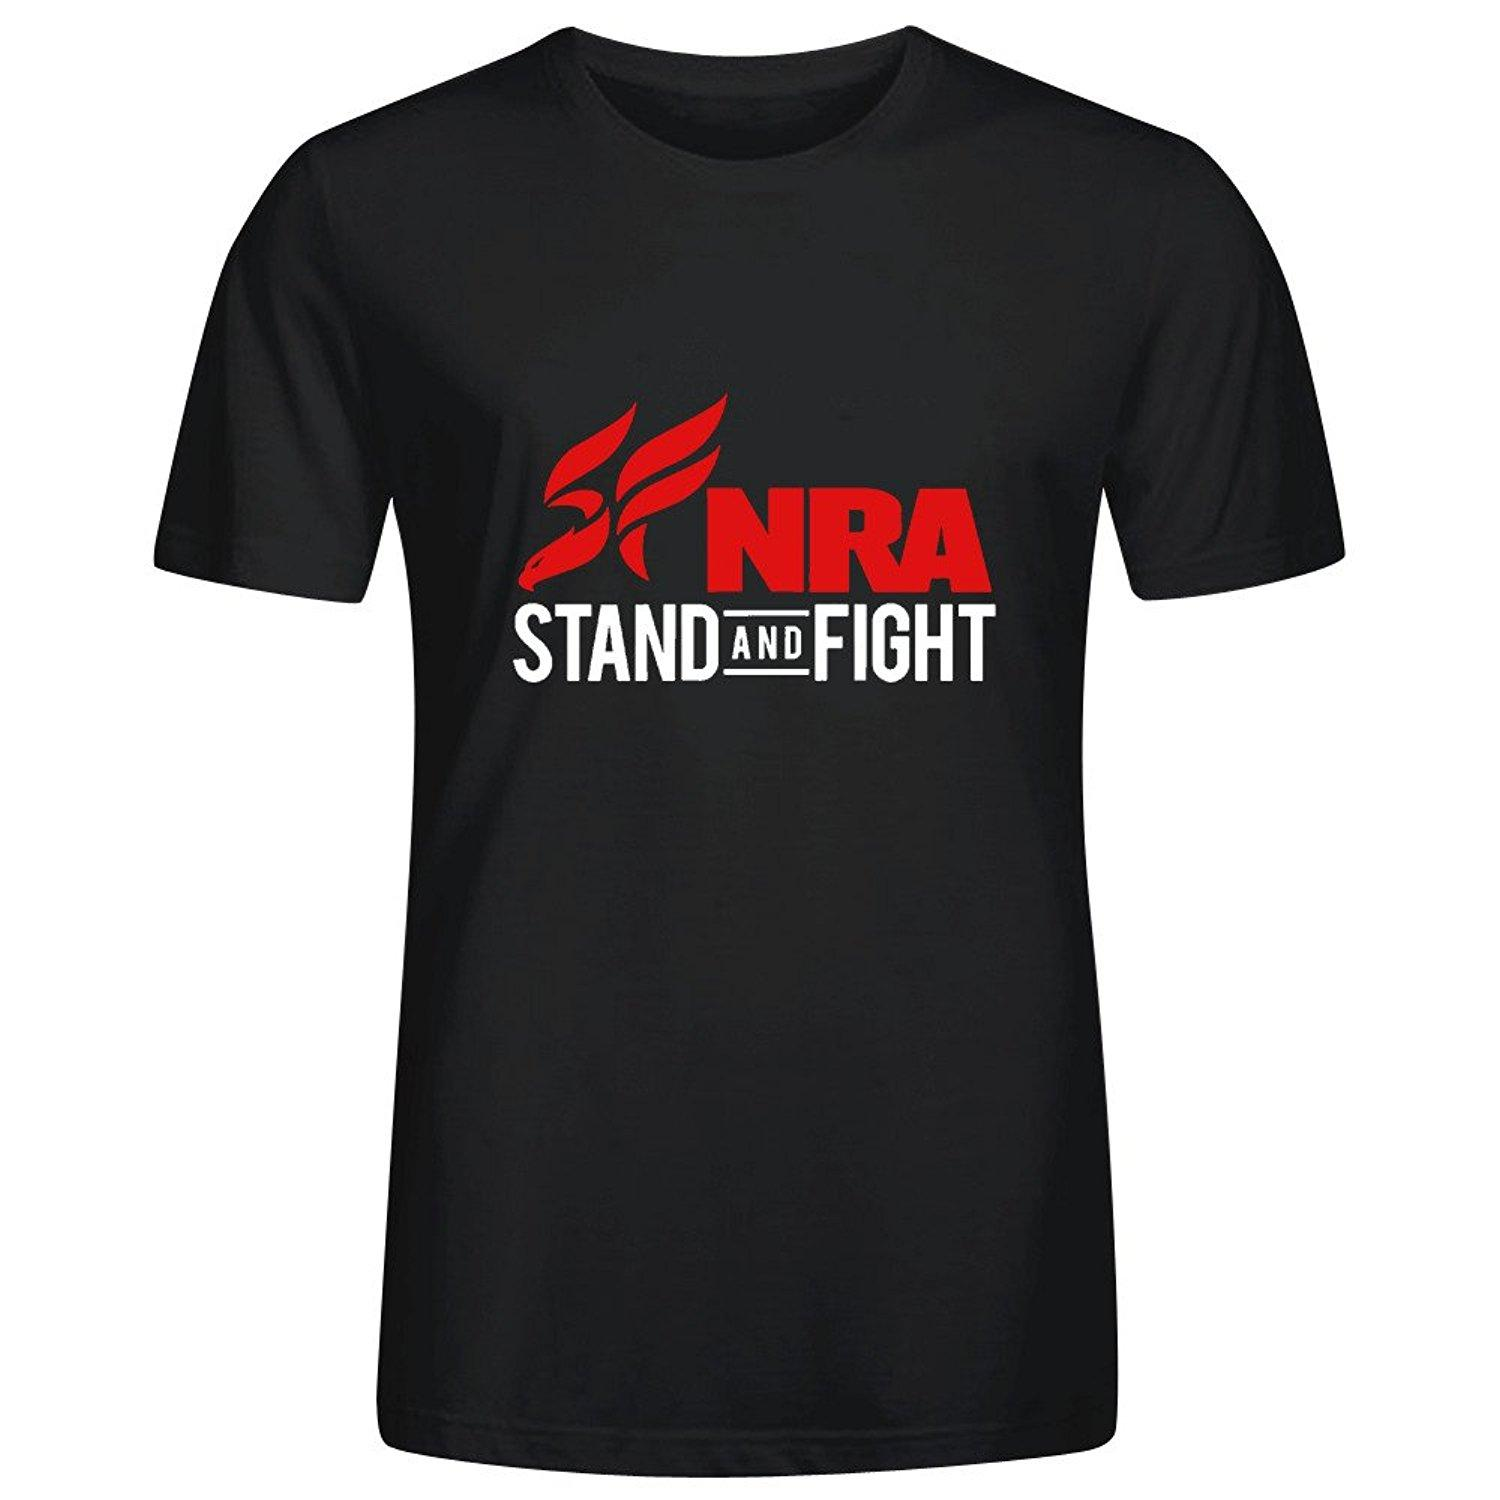 Personalized Design NRA Stand and Fight Image Print T Shirts Tee for Mens Boys Cotton Round Collar Funny Hip hop Cool